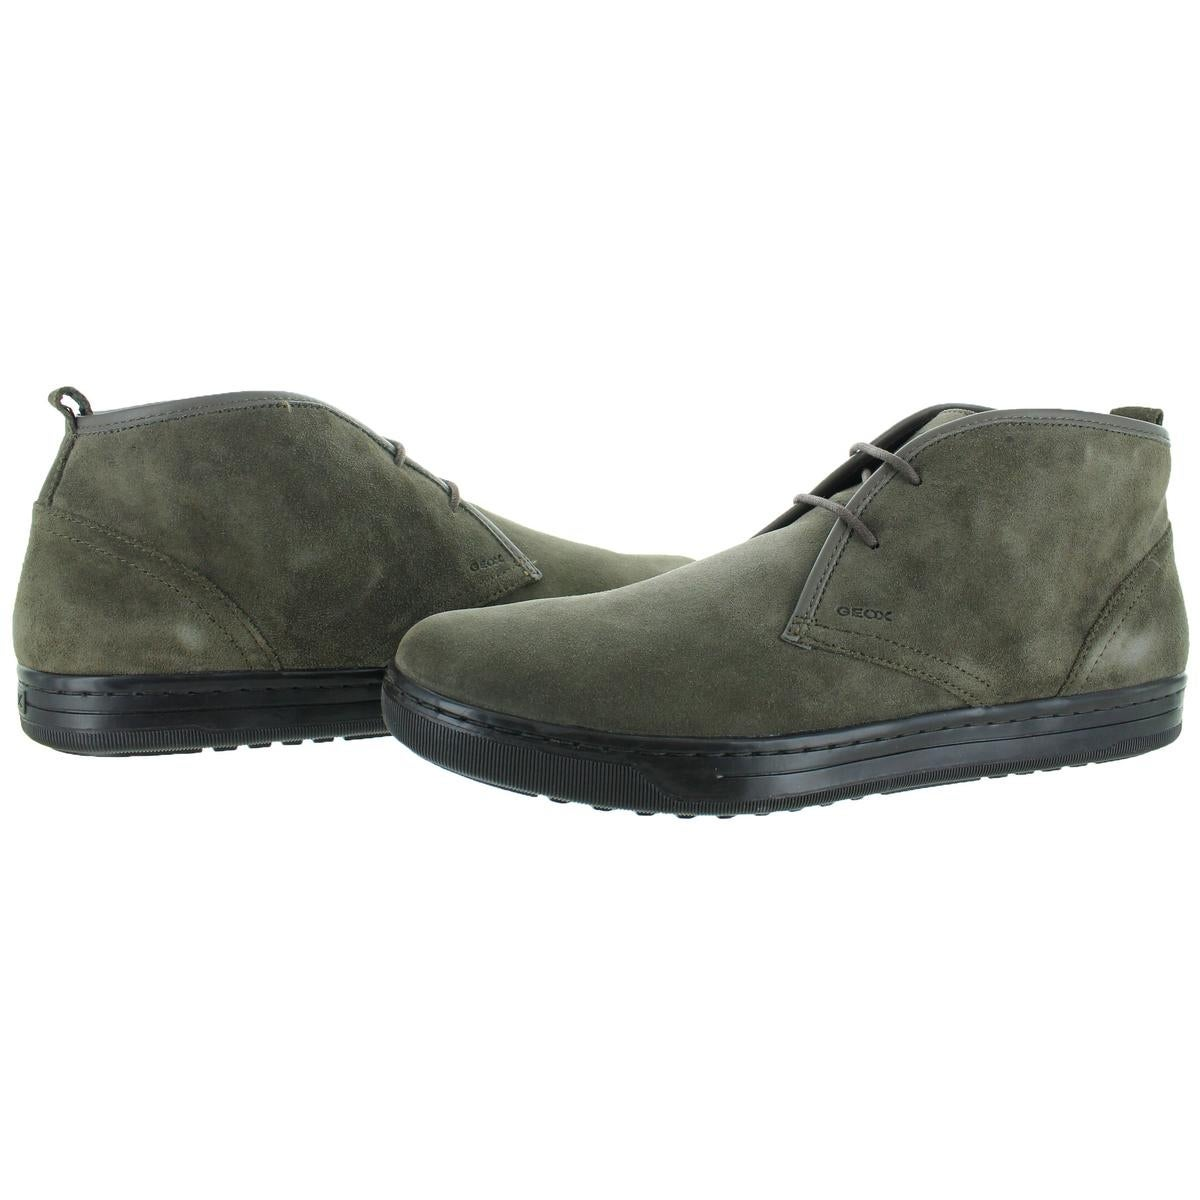 368334ae24e Shop Geox Mens Rikin Chukka Boots Suede Breathable - Free Shipping Today -  Overstock - 23589545